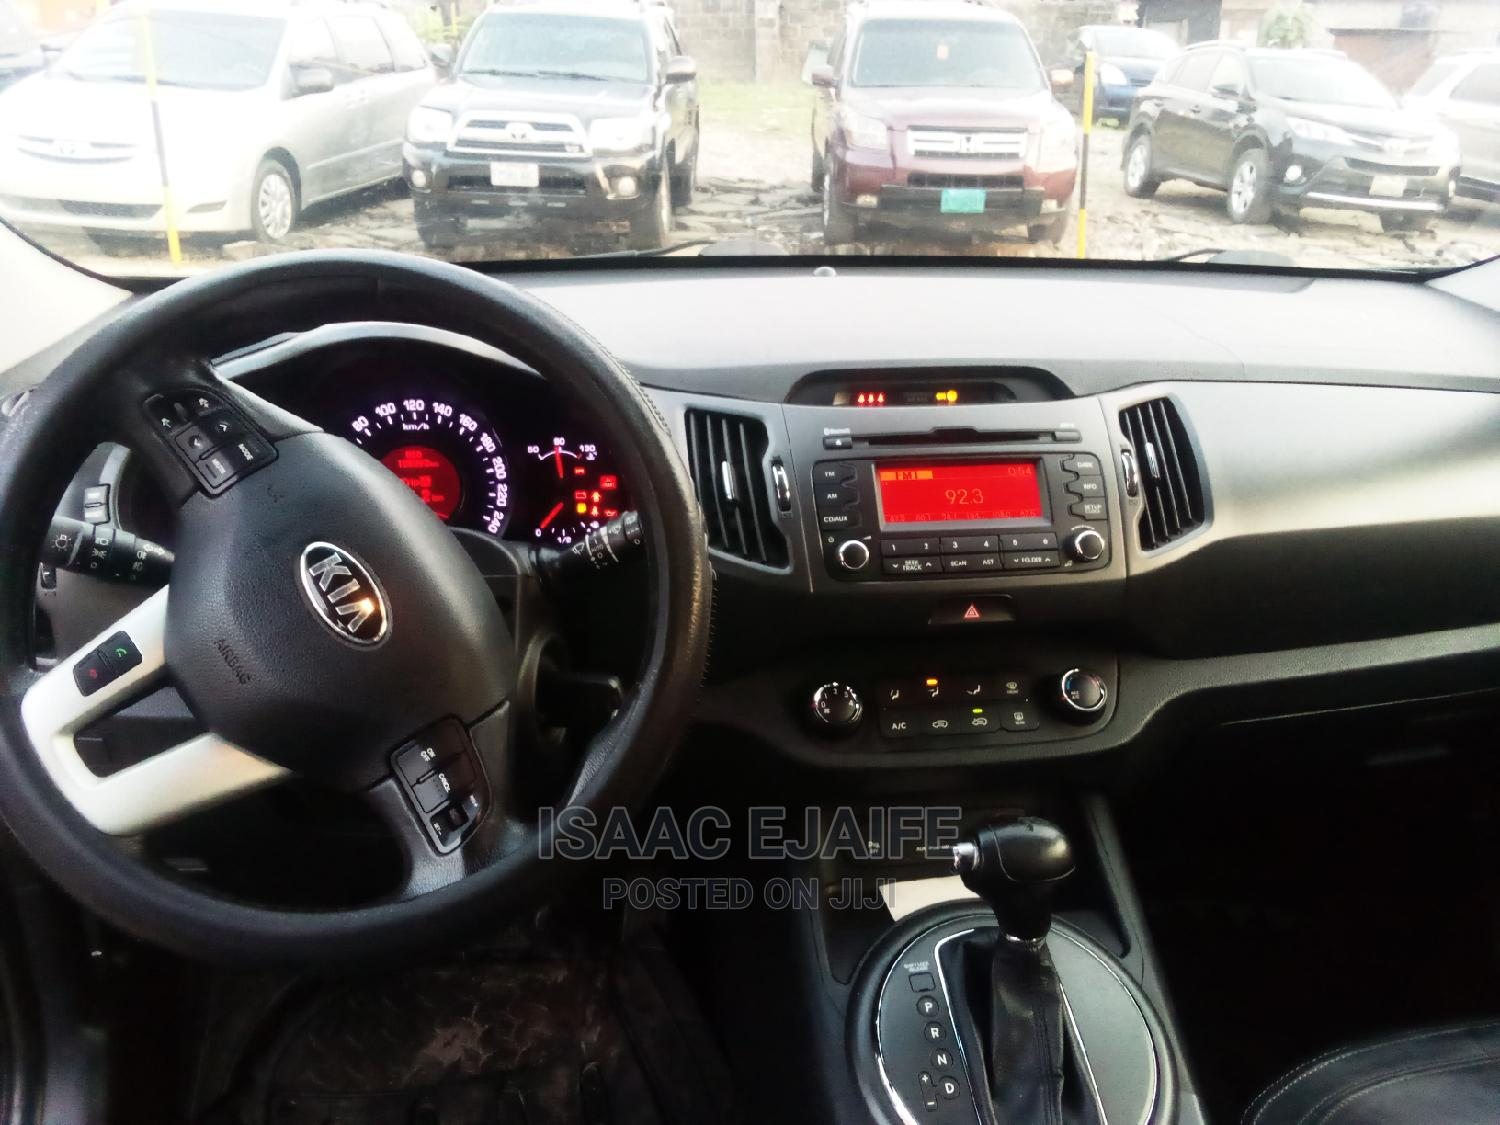 Kia Sportage 2014 EX 4dr SUV (2.4L 4cyl 6A) Black | Cars for sale in Port-Harcourt, Rivers State, Nigeria